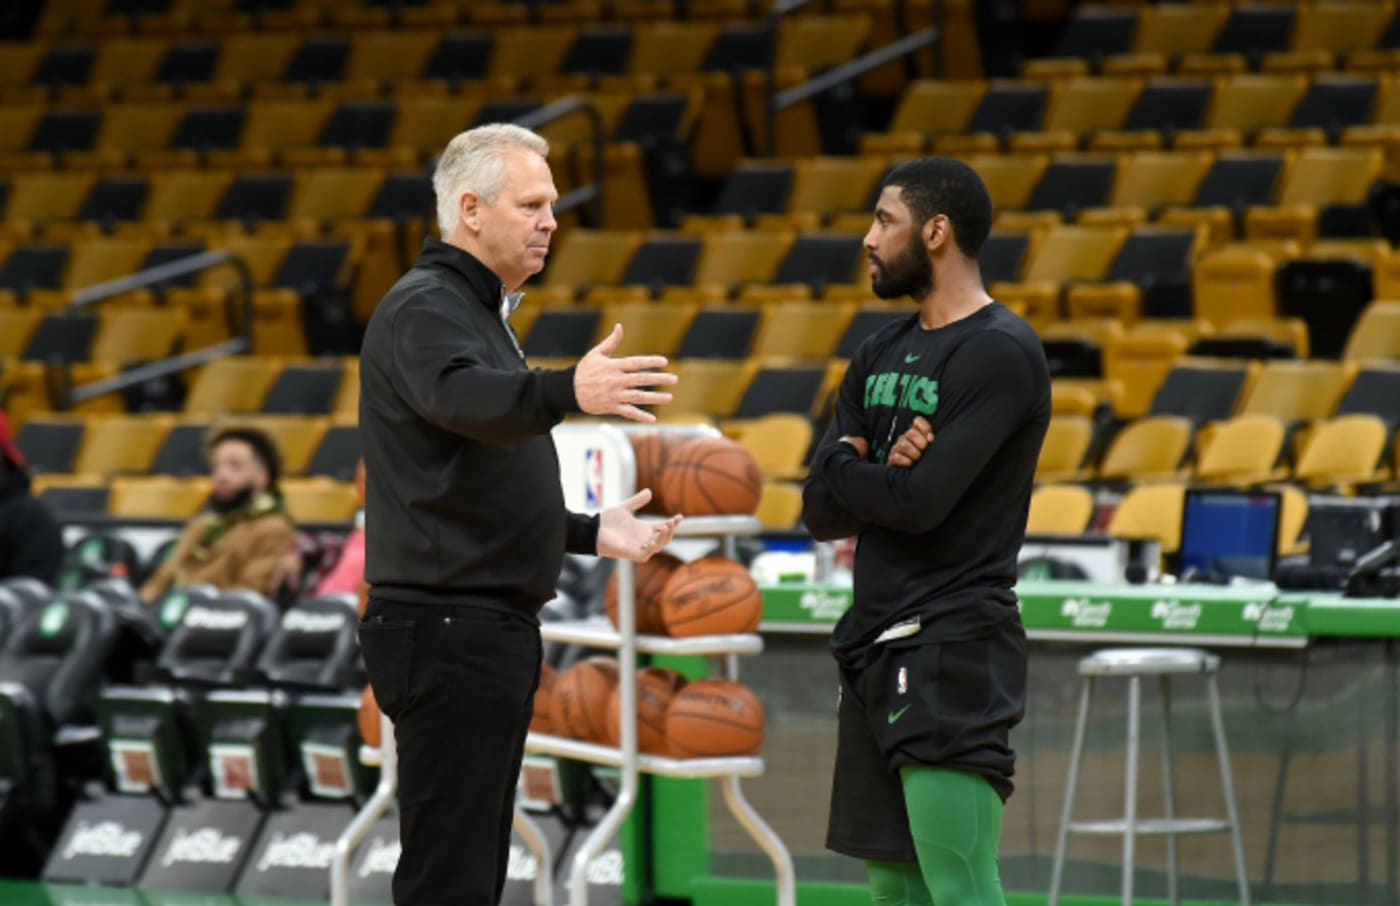 General Manager Danny Ainge and Kyrie Irving